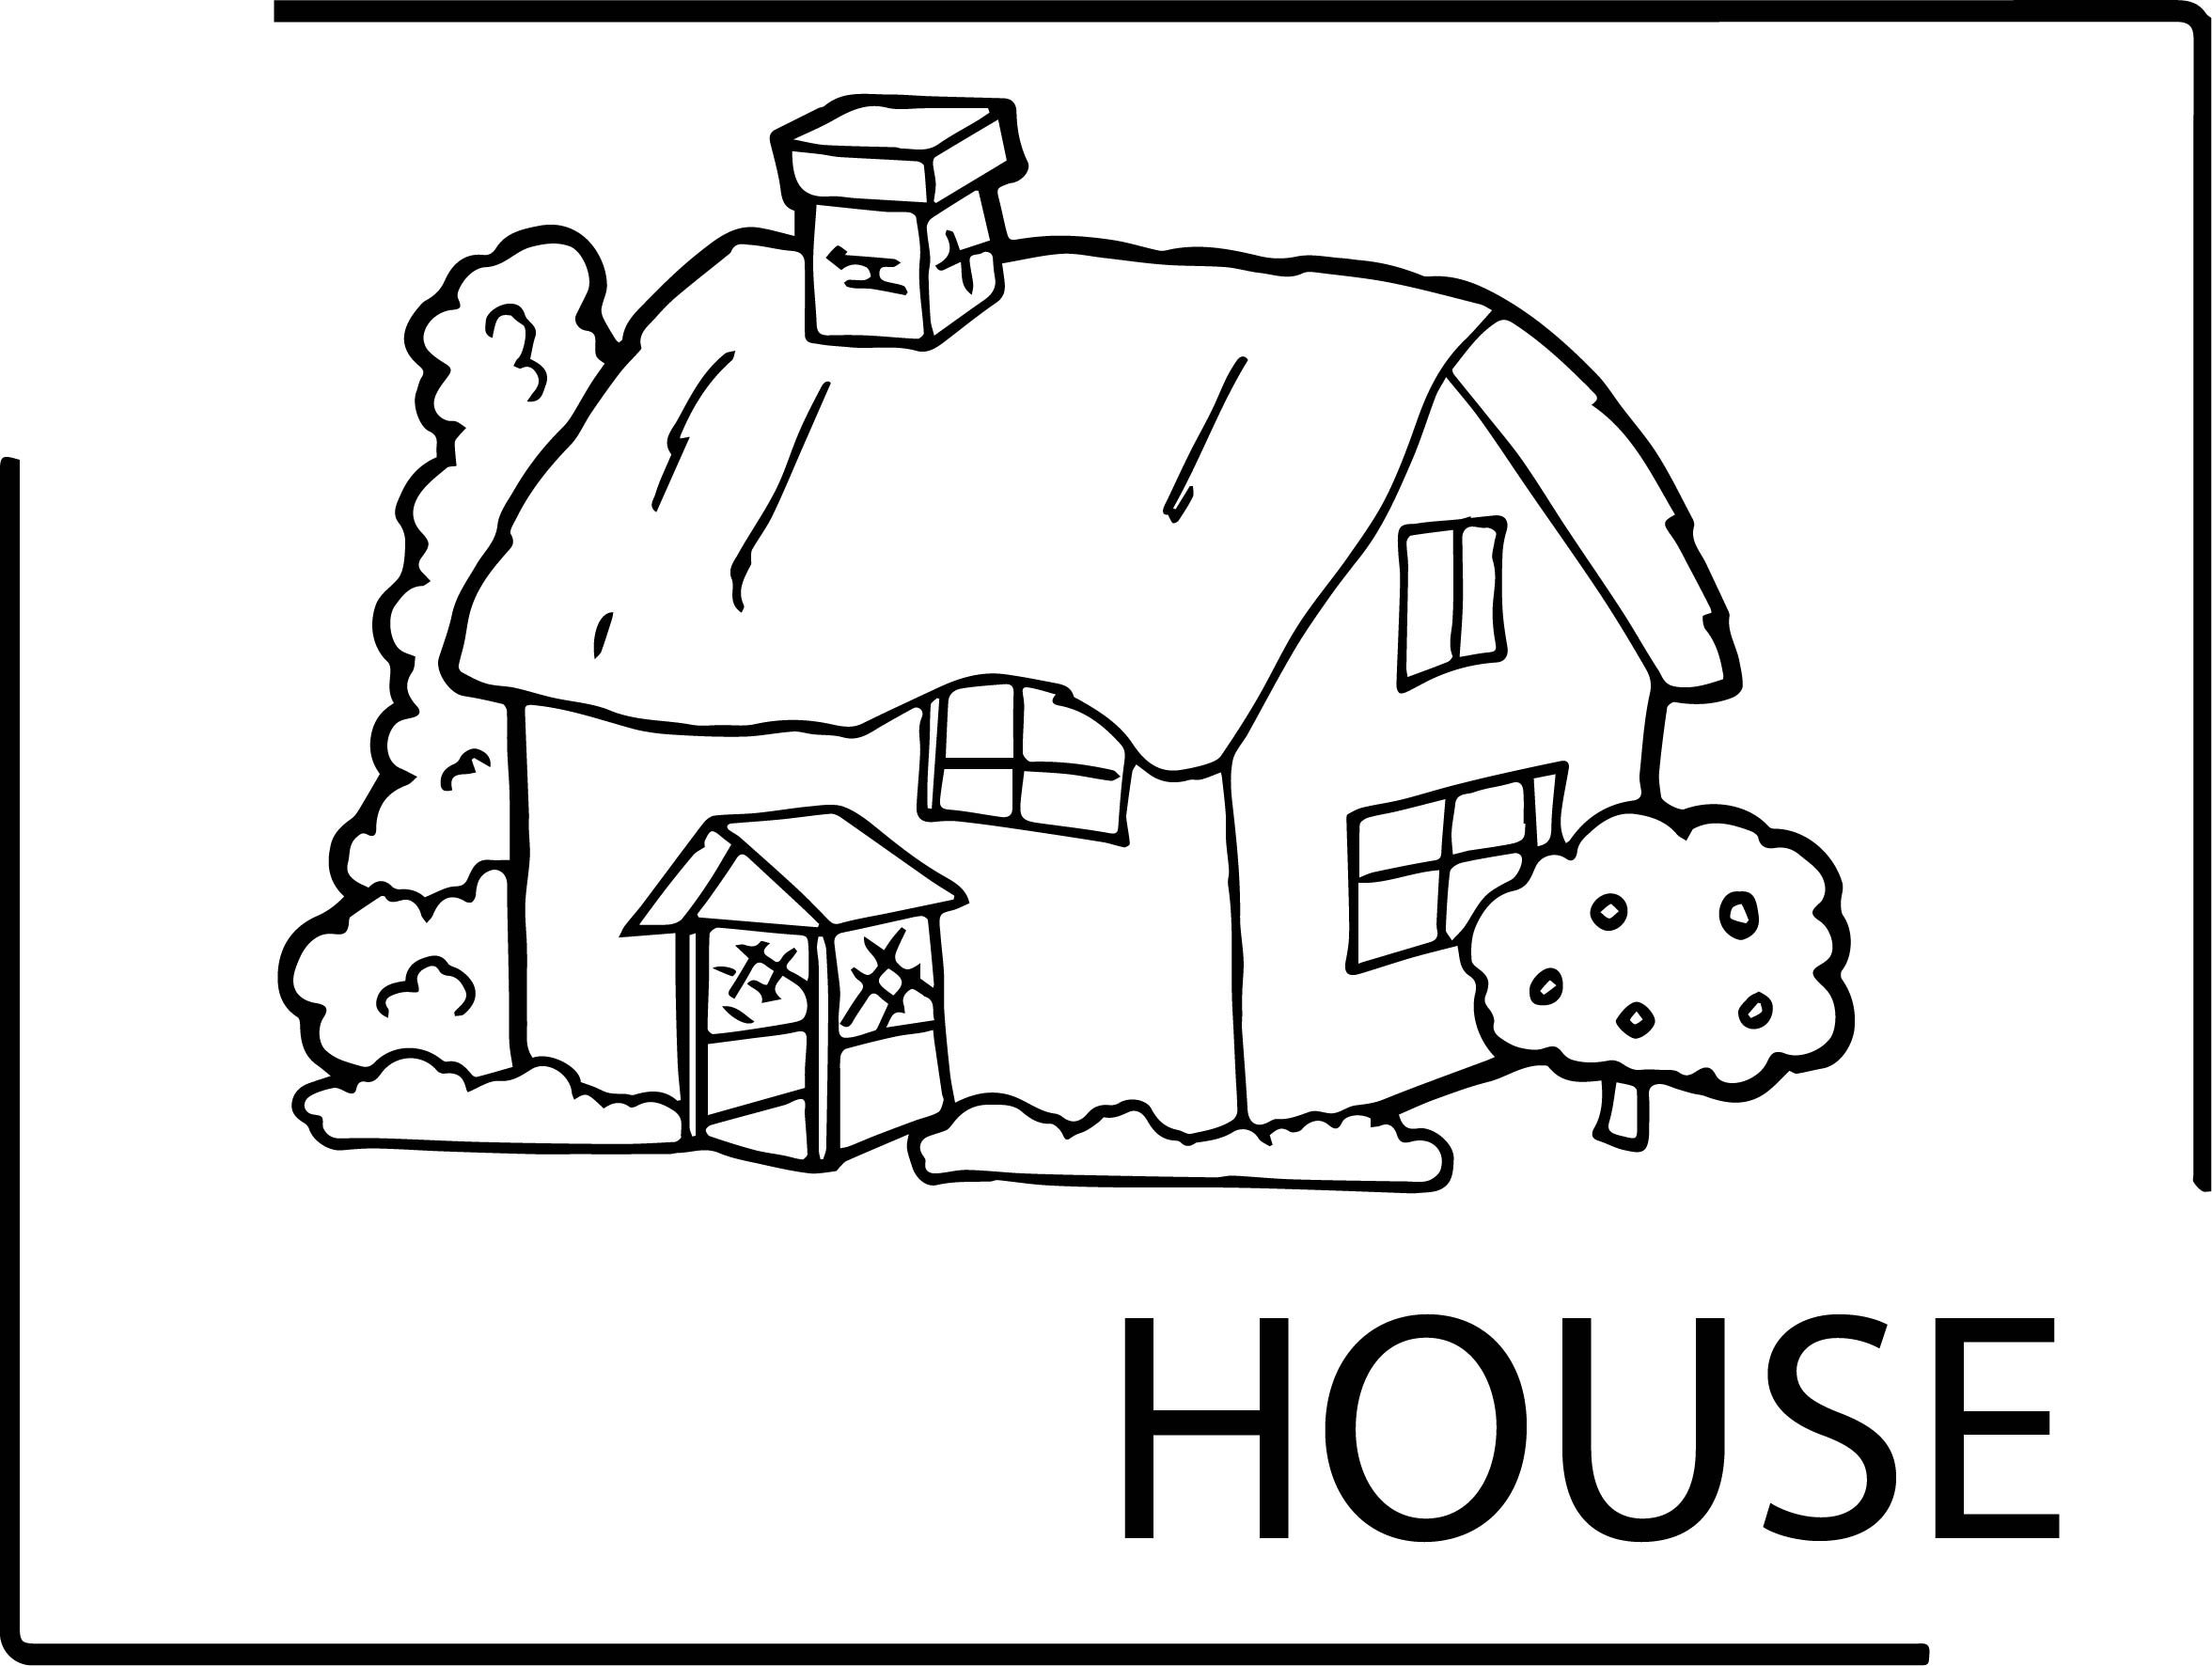 House Text And House Coloring Page